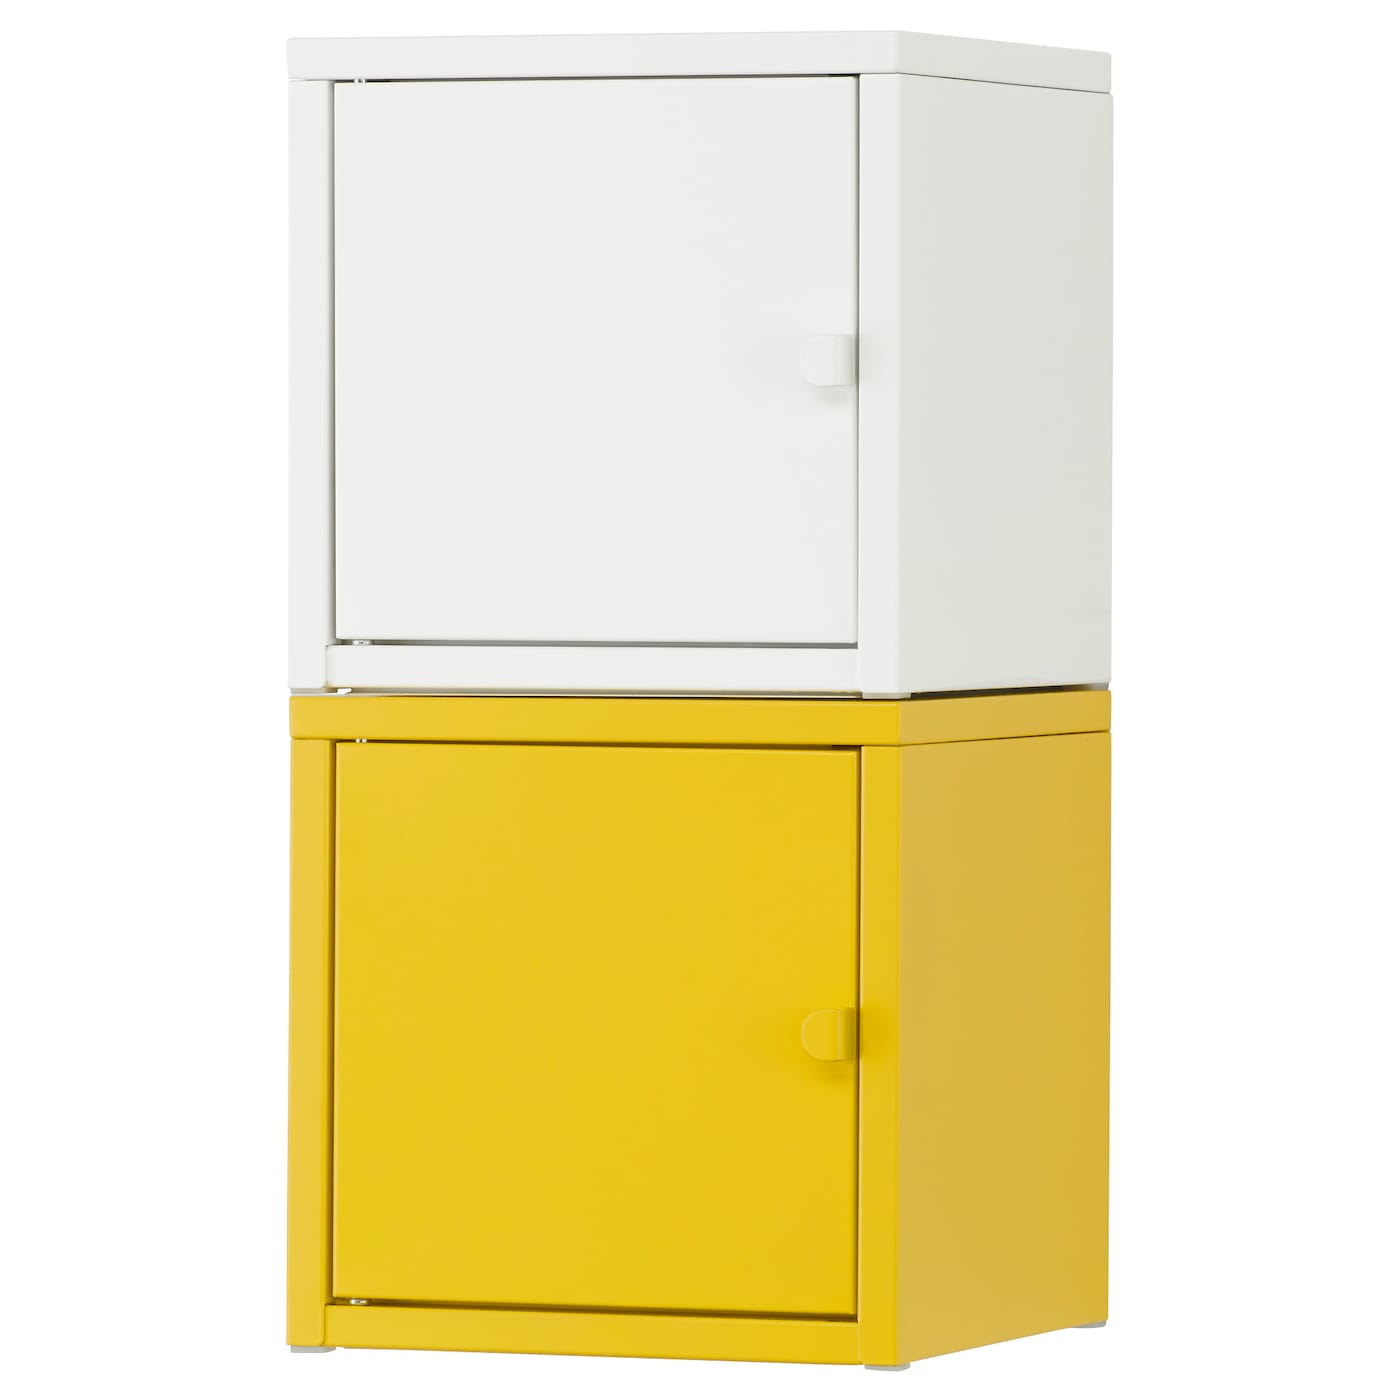 Lixhult Storage Combination White Yellow 25x50 Cm Ikea